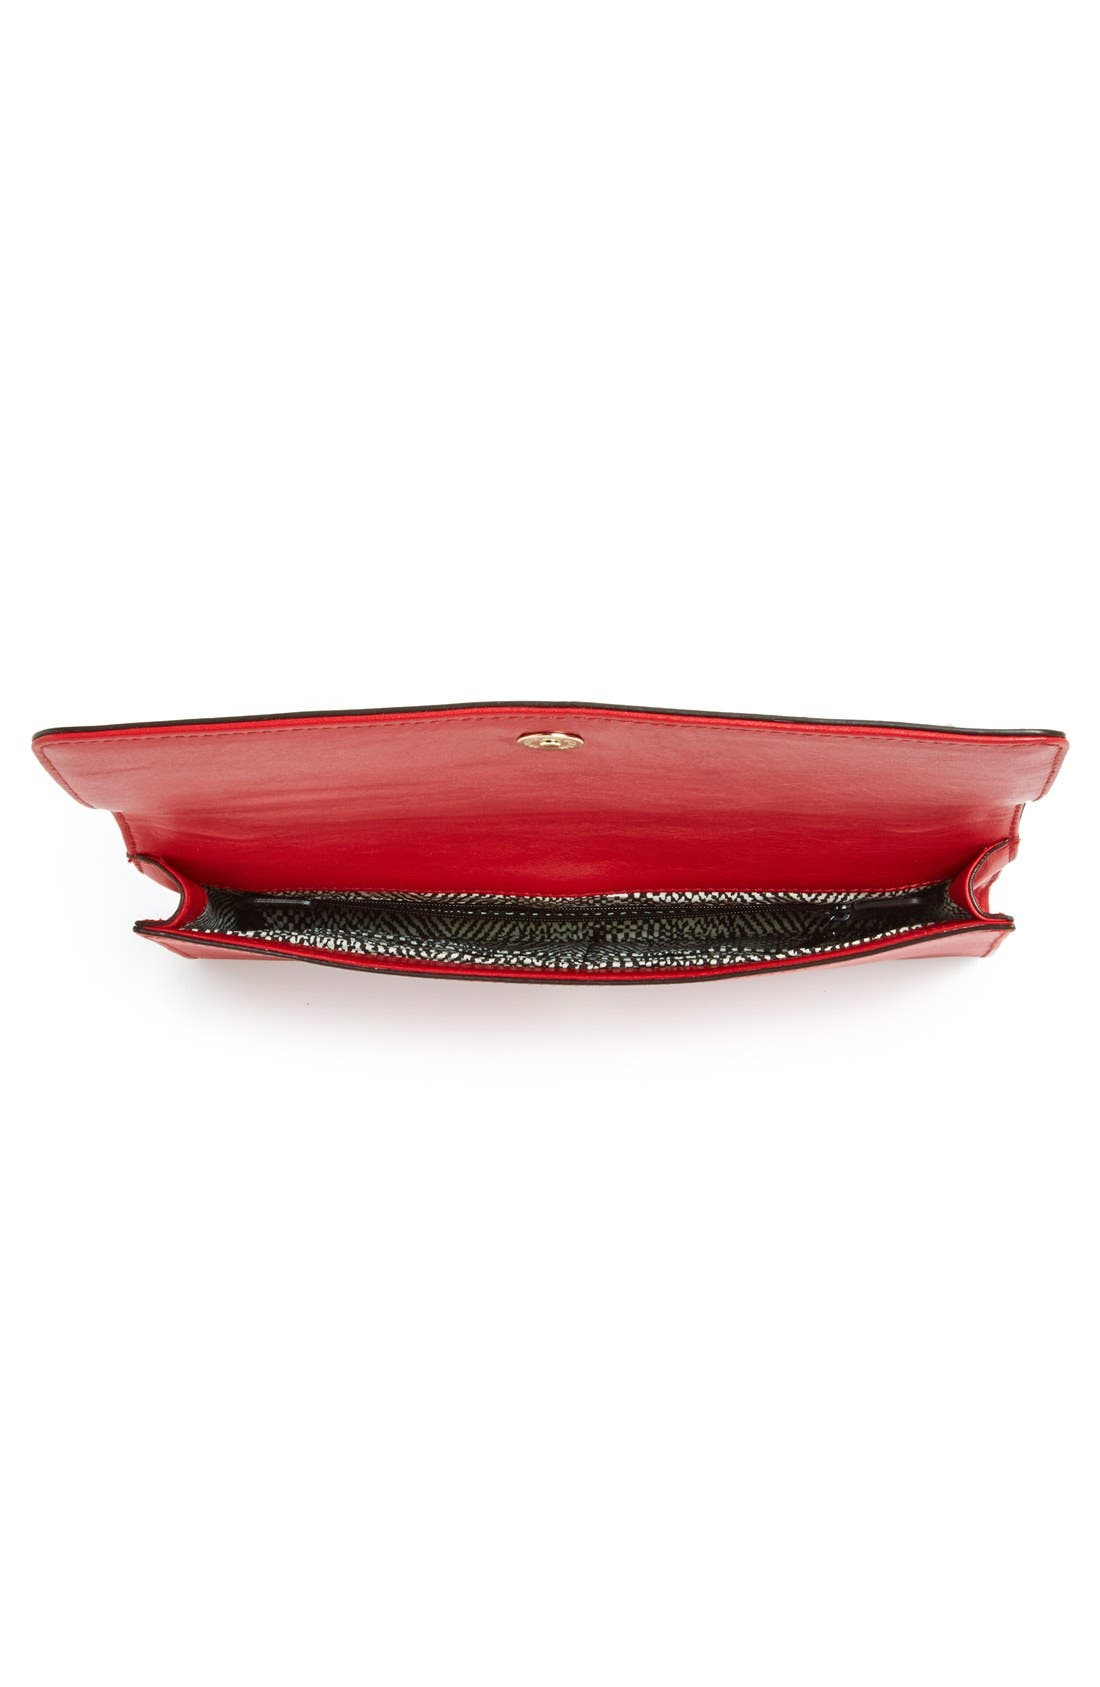 REBECCA MINKOFF,                             'Amorous' Clutch with Studs,                             Alternate thumbnail 2, color,                             600